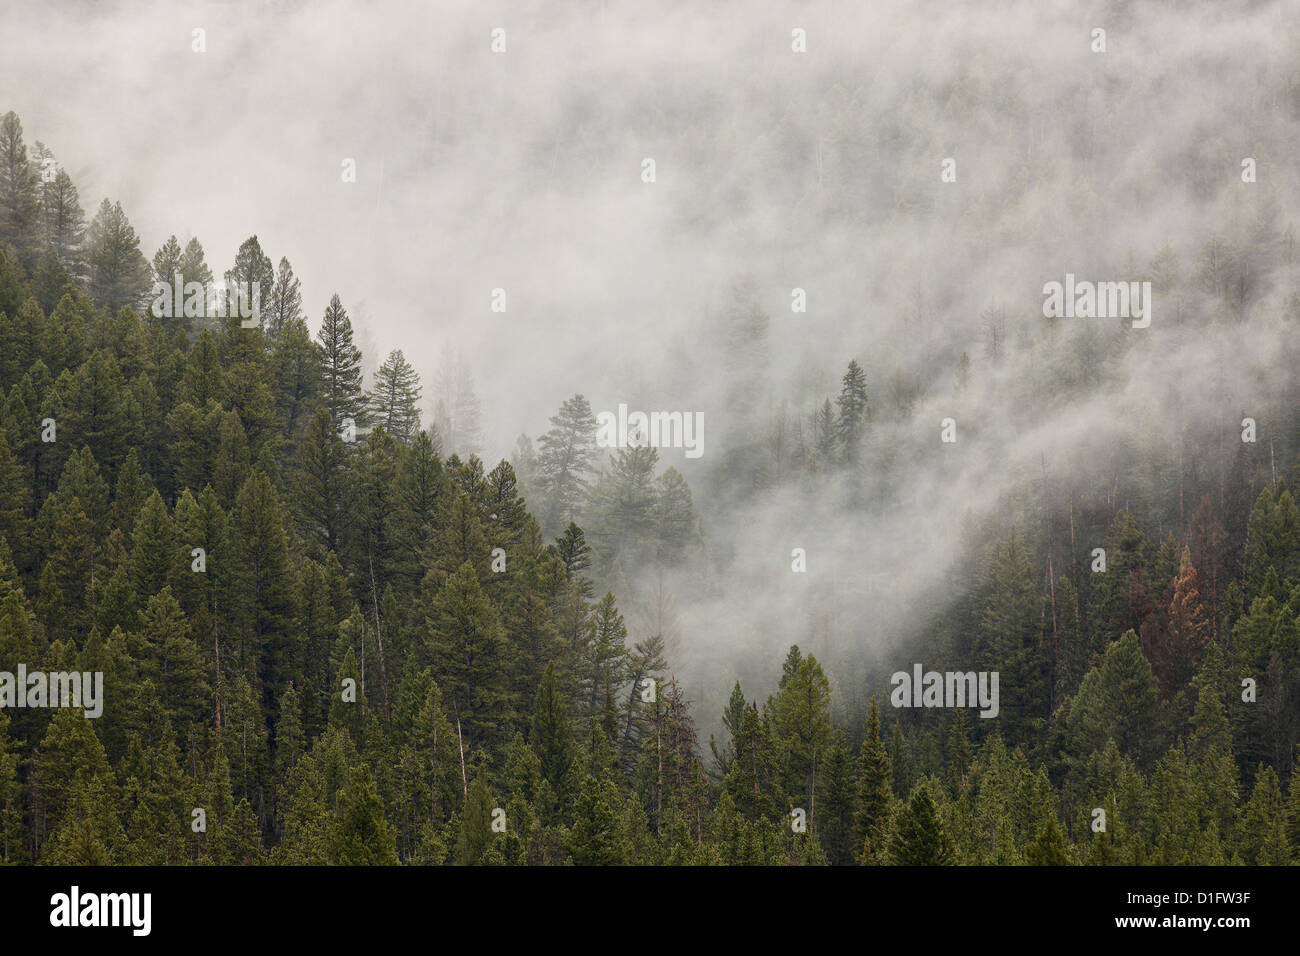 Fog among evergreens, Yellowstone National Park, UNESCO World Heritage Site, Wyoming, United States of America, - Stock Image